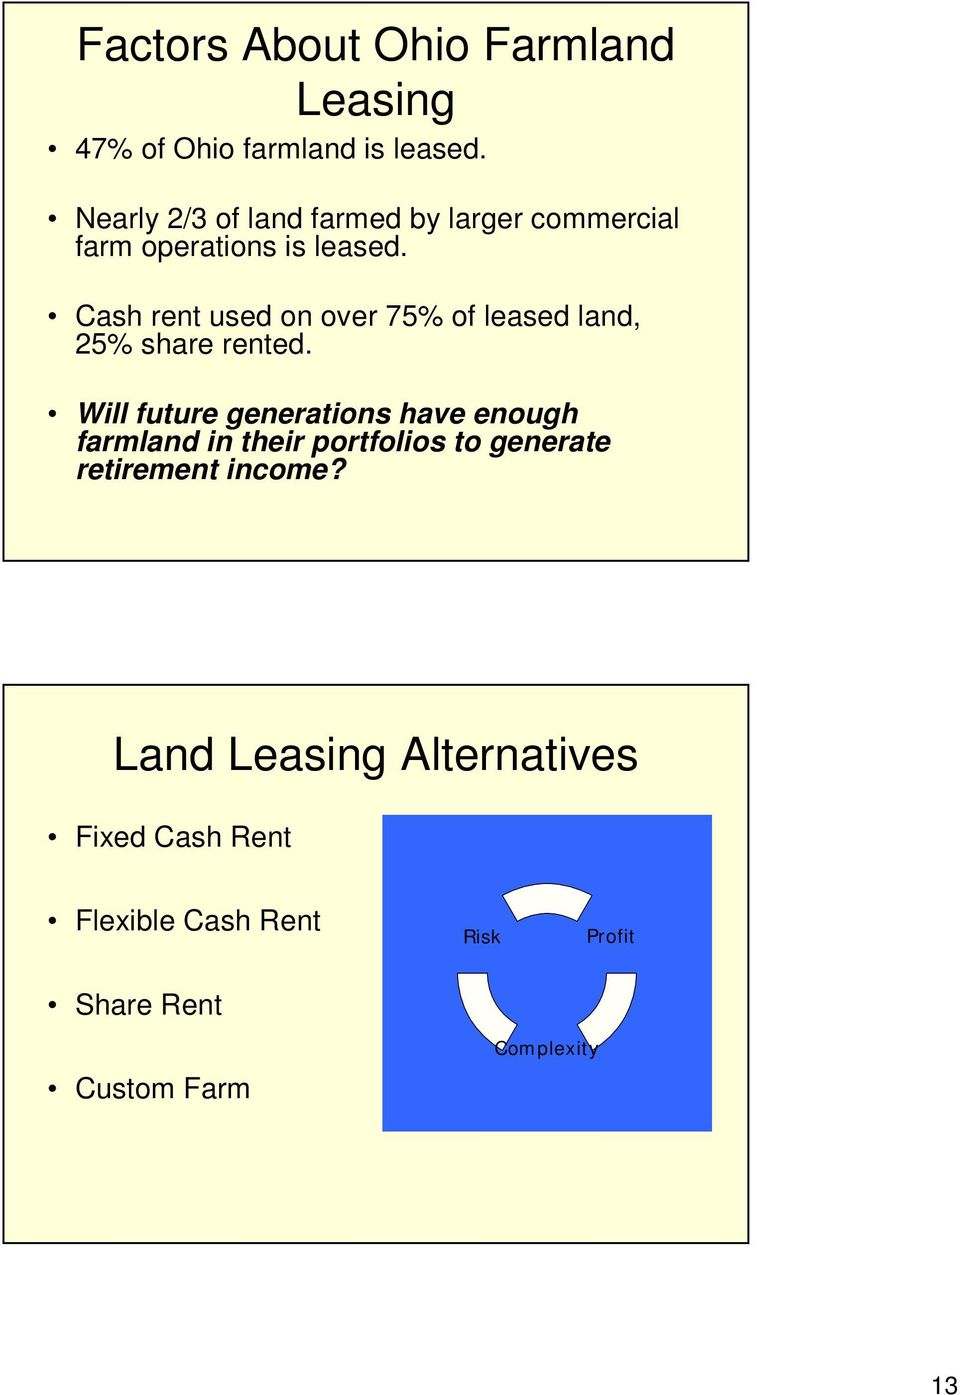 Cash rent used on over 75% of leased land, 25% share rented.